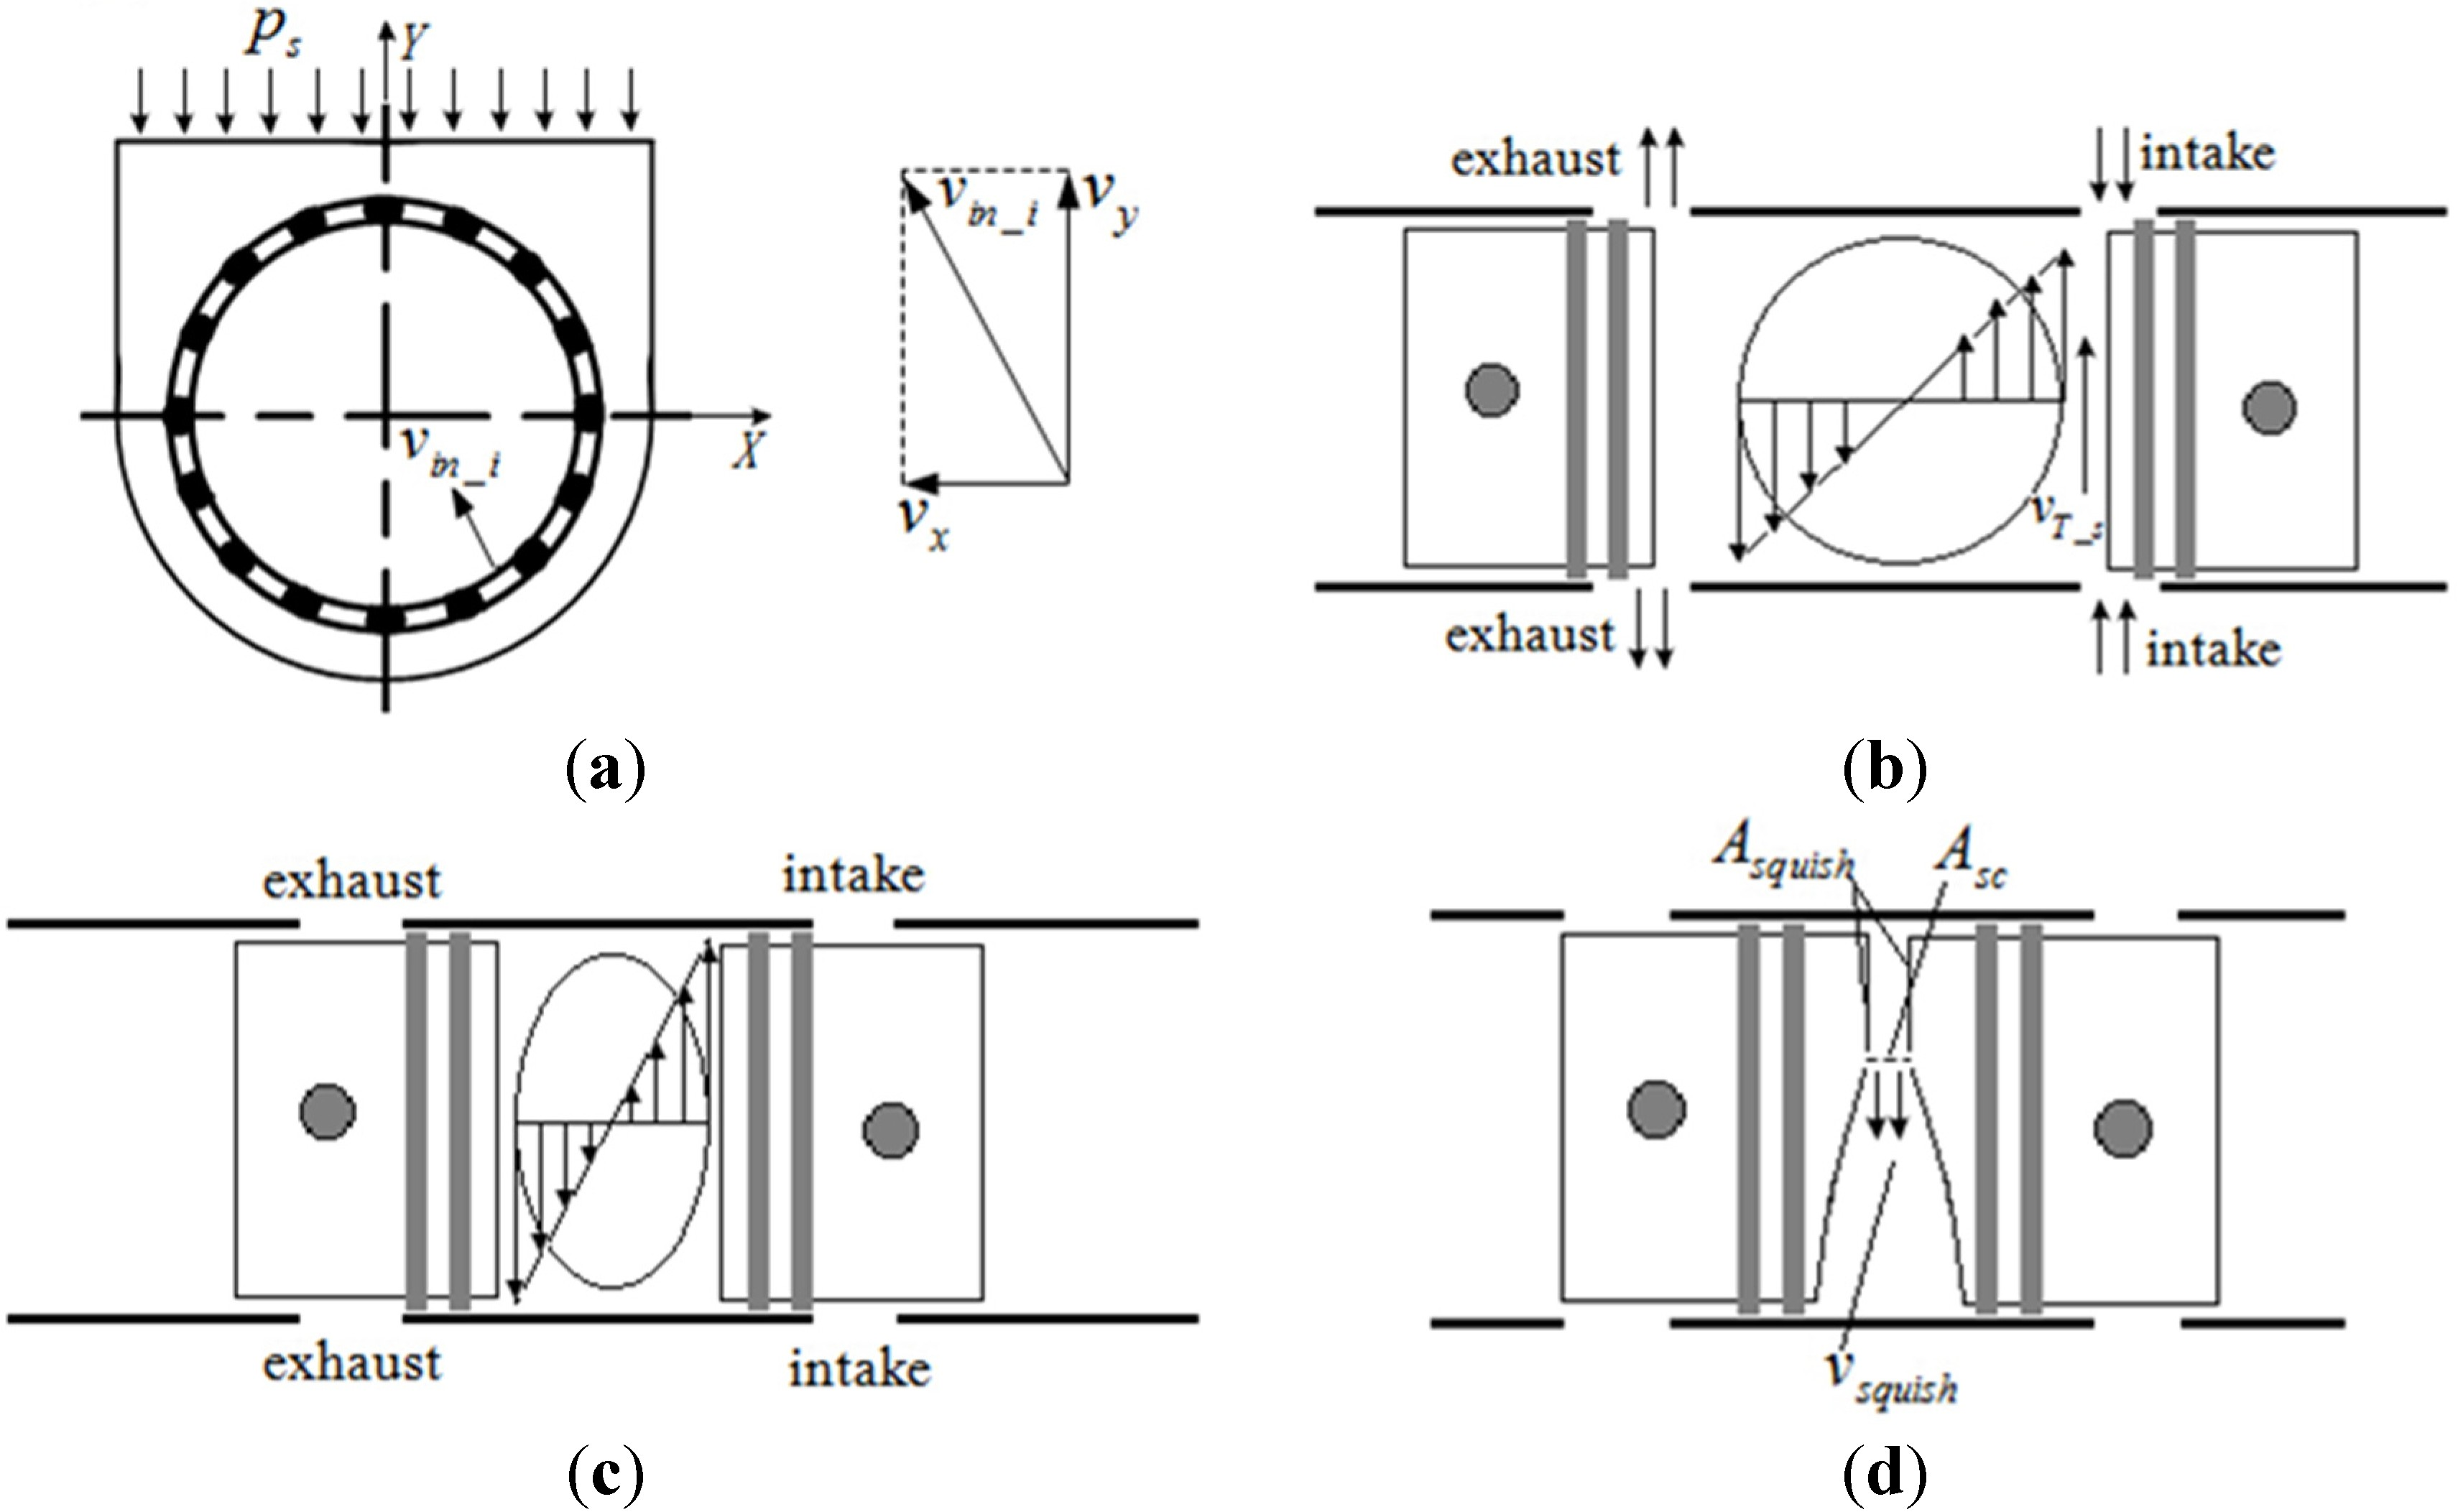 Four Stroke Engine Diagram Craftsman 30cc 4 Cycle Straight Shaft Energies Free Full Text Of